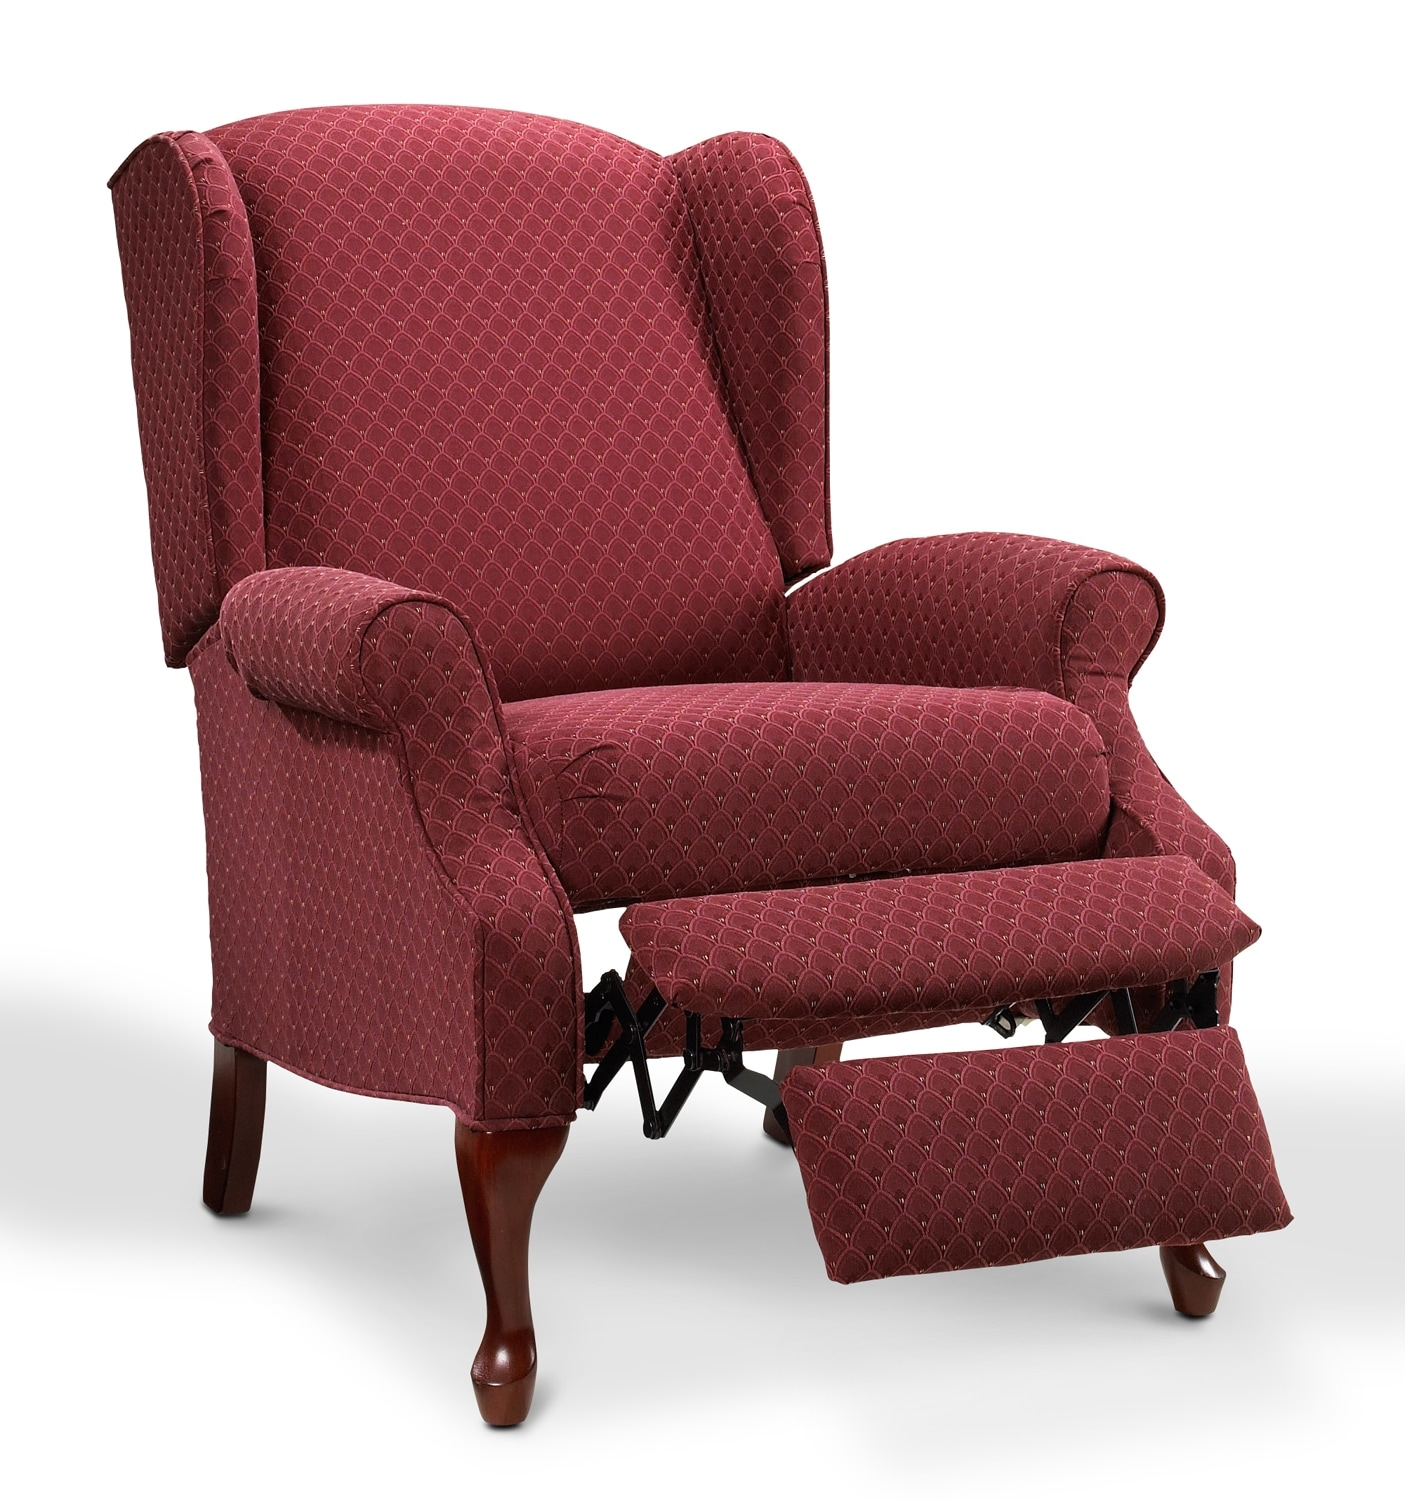 Tortuga Outdoor Lexington Wicker Swivel Glider moreover ItemInformation in addition Havana Swivel Rocker Recliner additionally Product product id 9971 besides Wingback Recliner. on swivel rocker recliner chair